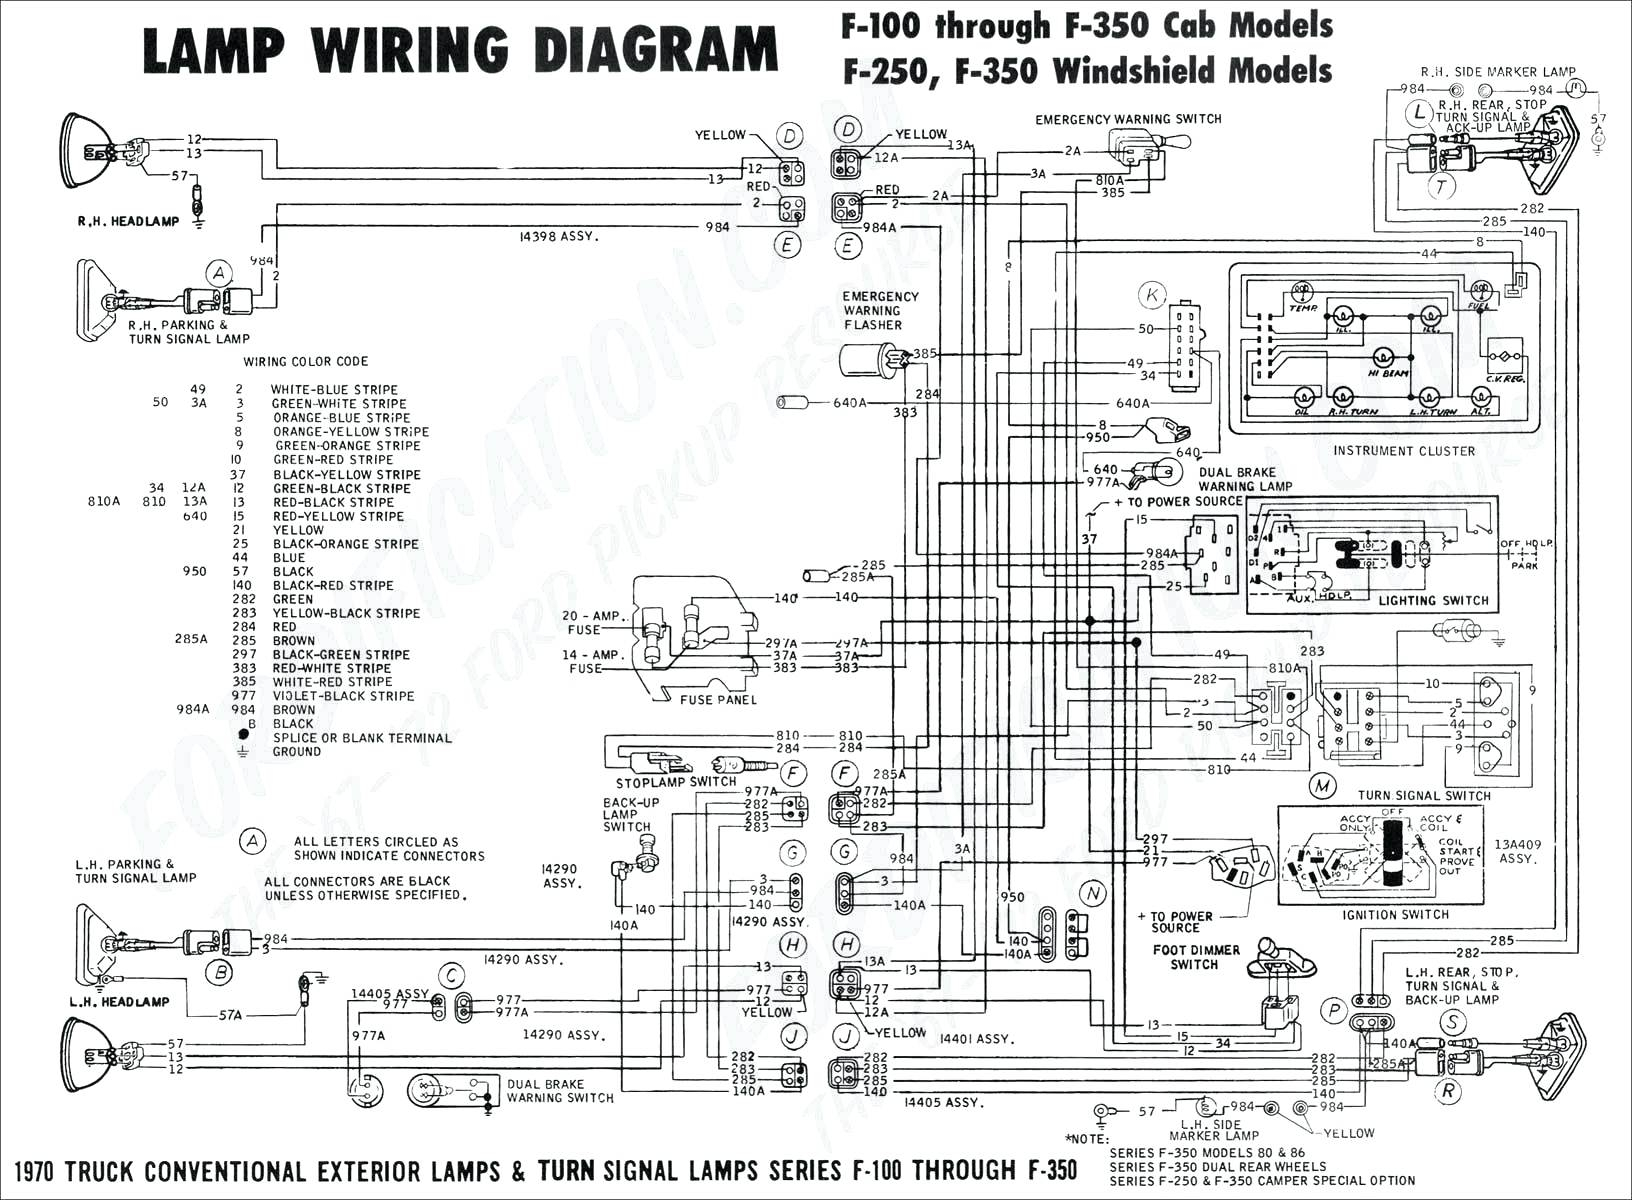 Dodge Wiring Diagram | Wiring Diagram on